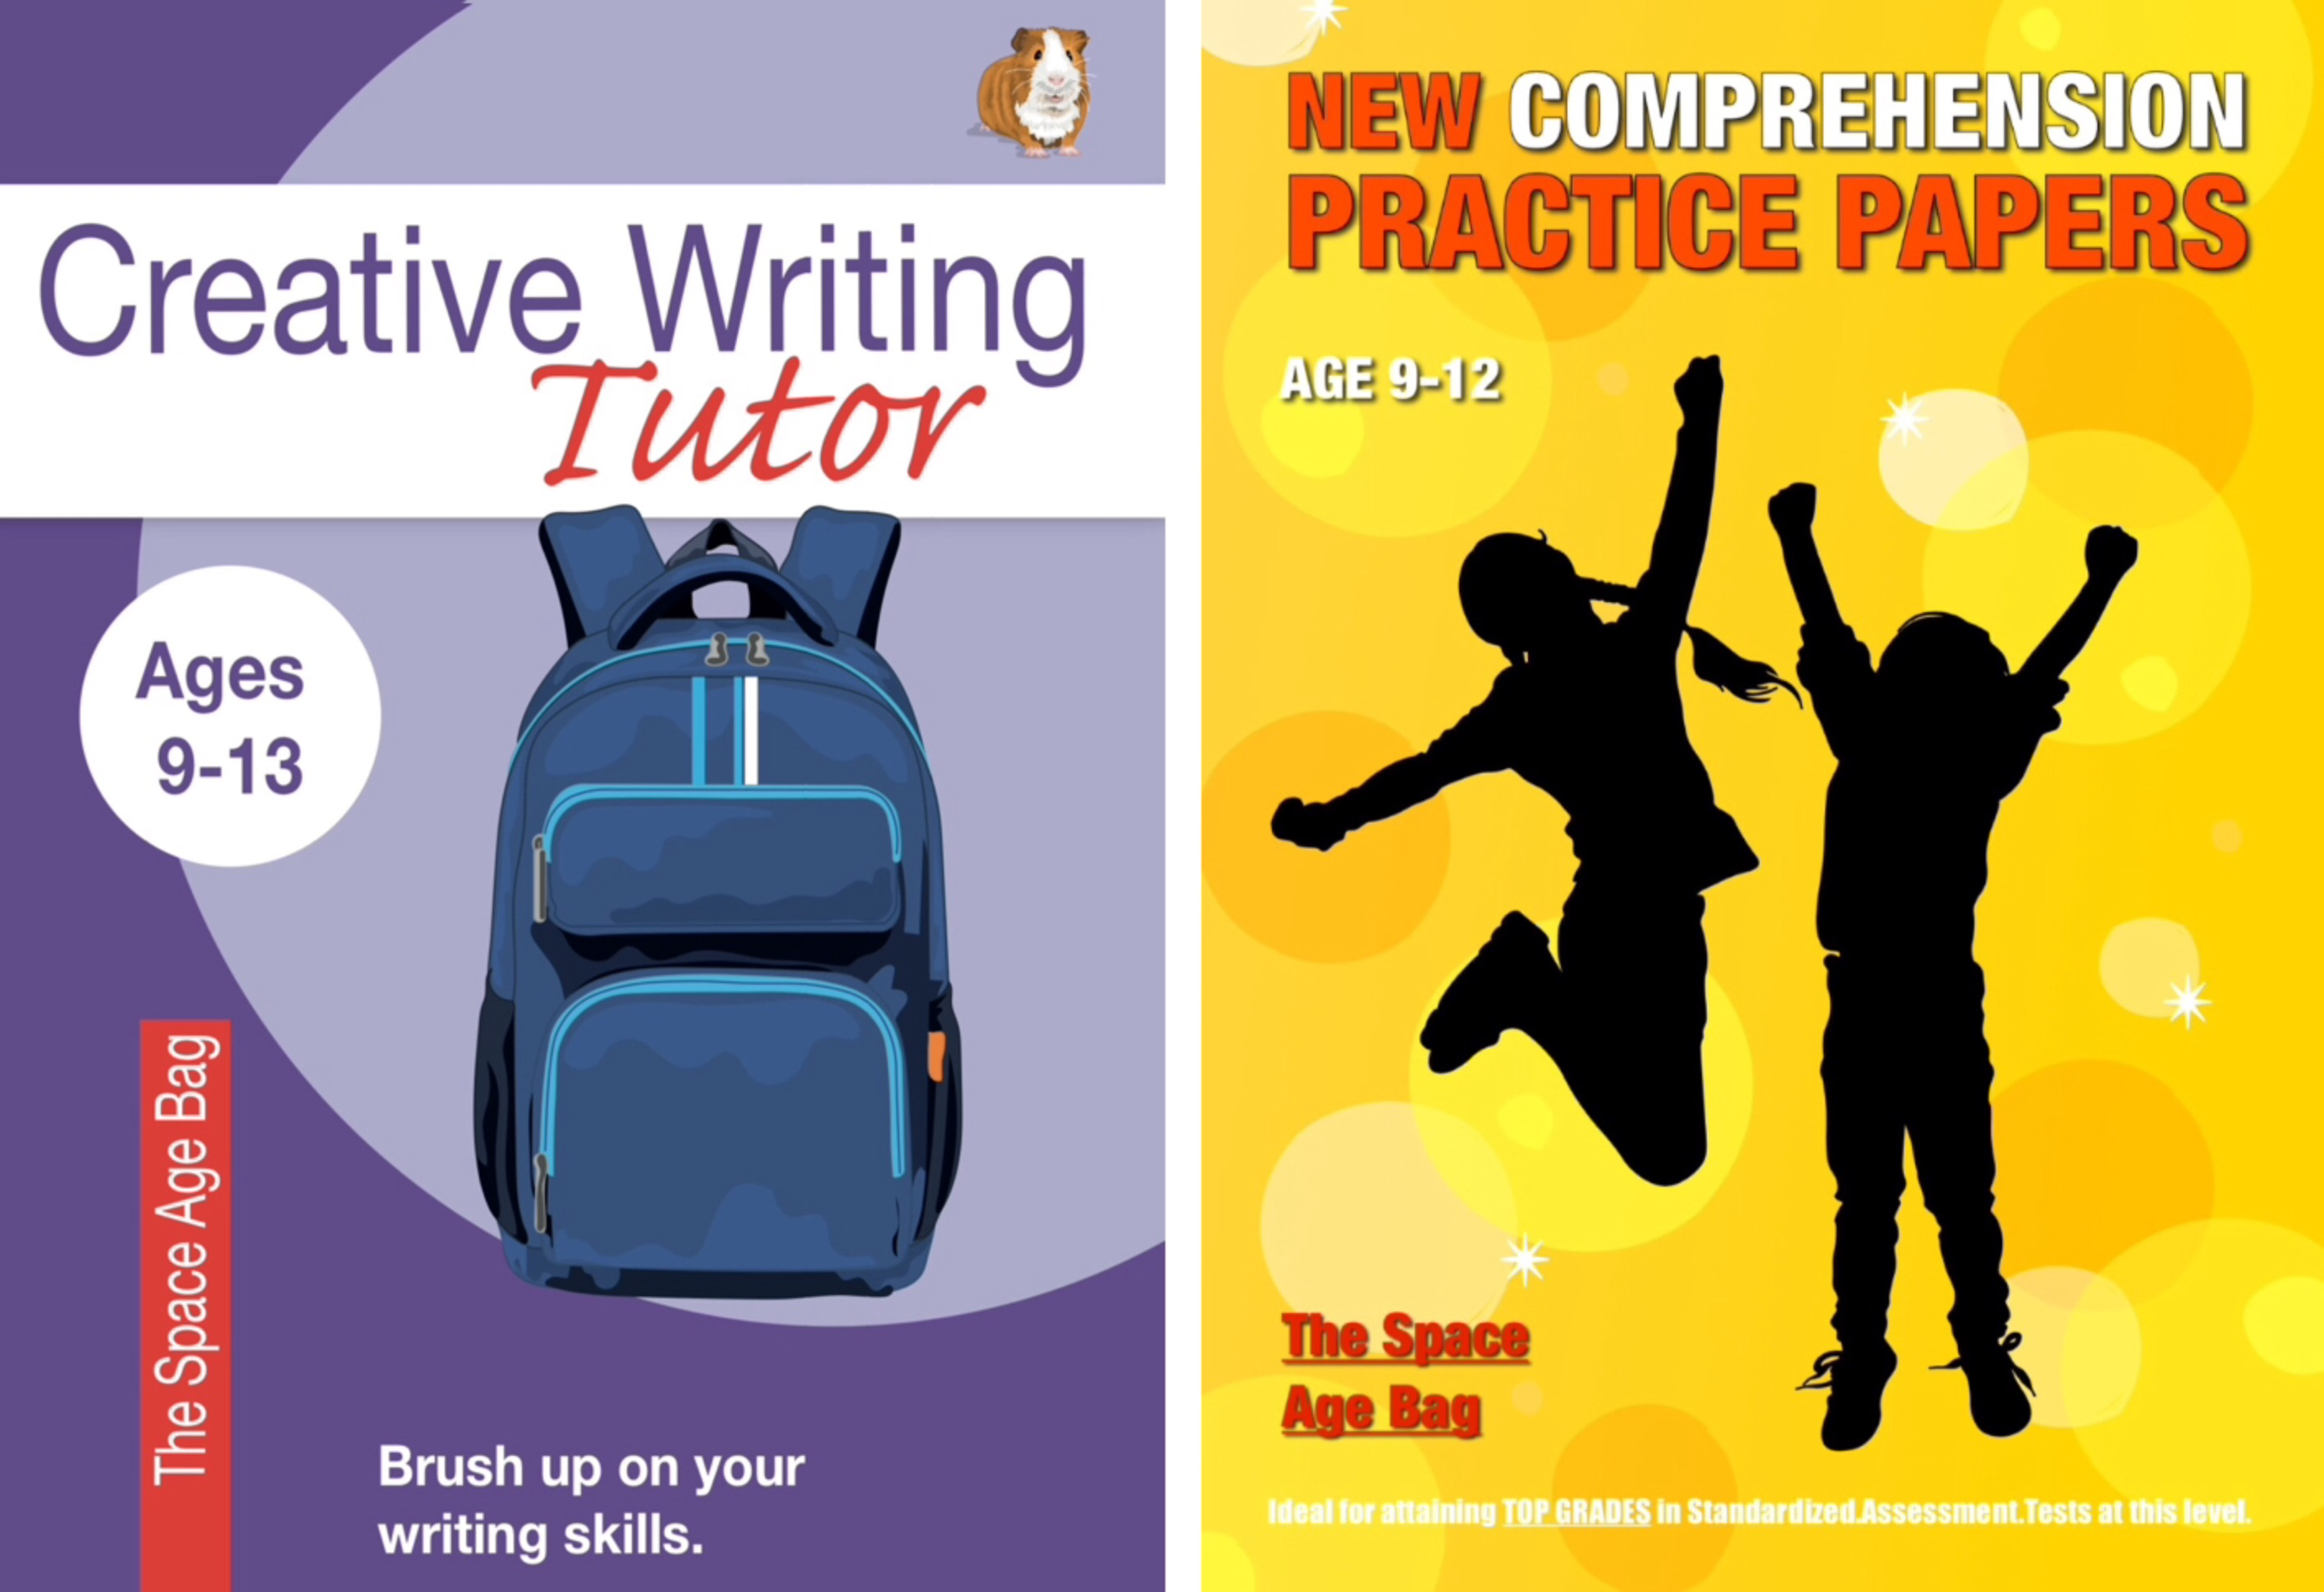 Highly Recommended: Learn Comprehension Skills 'The Space Age Bag' 9-12 years